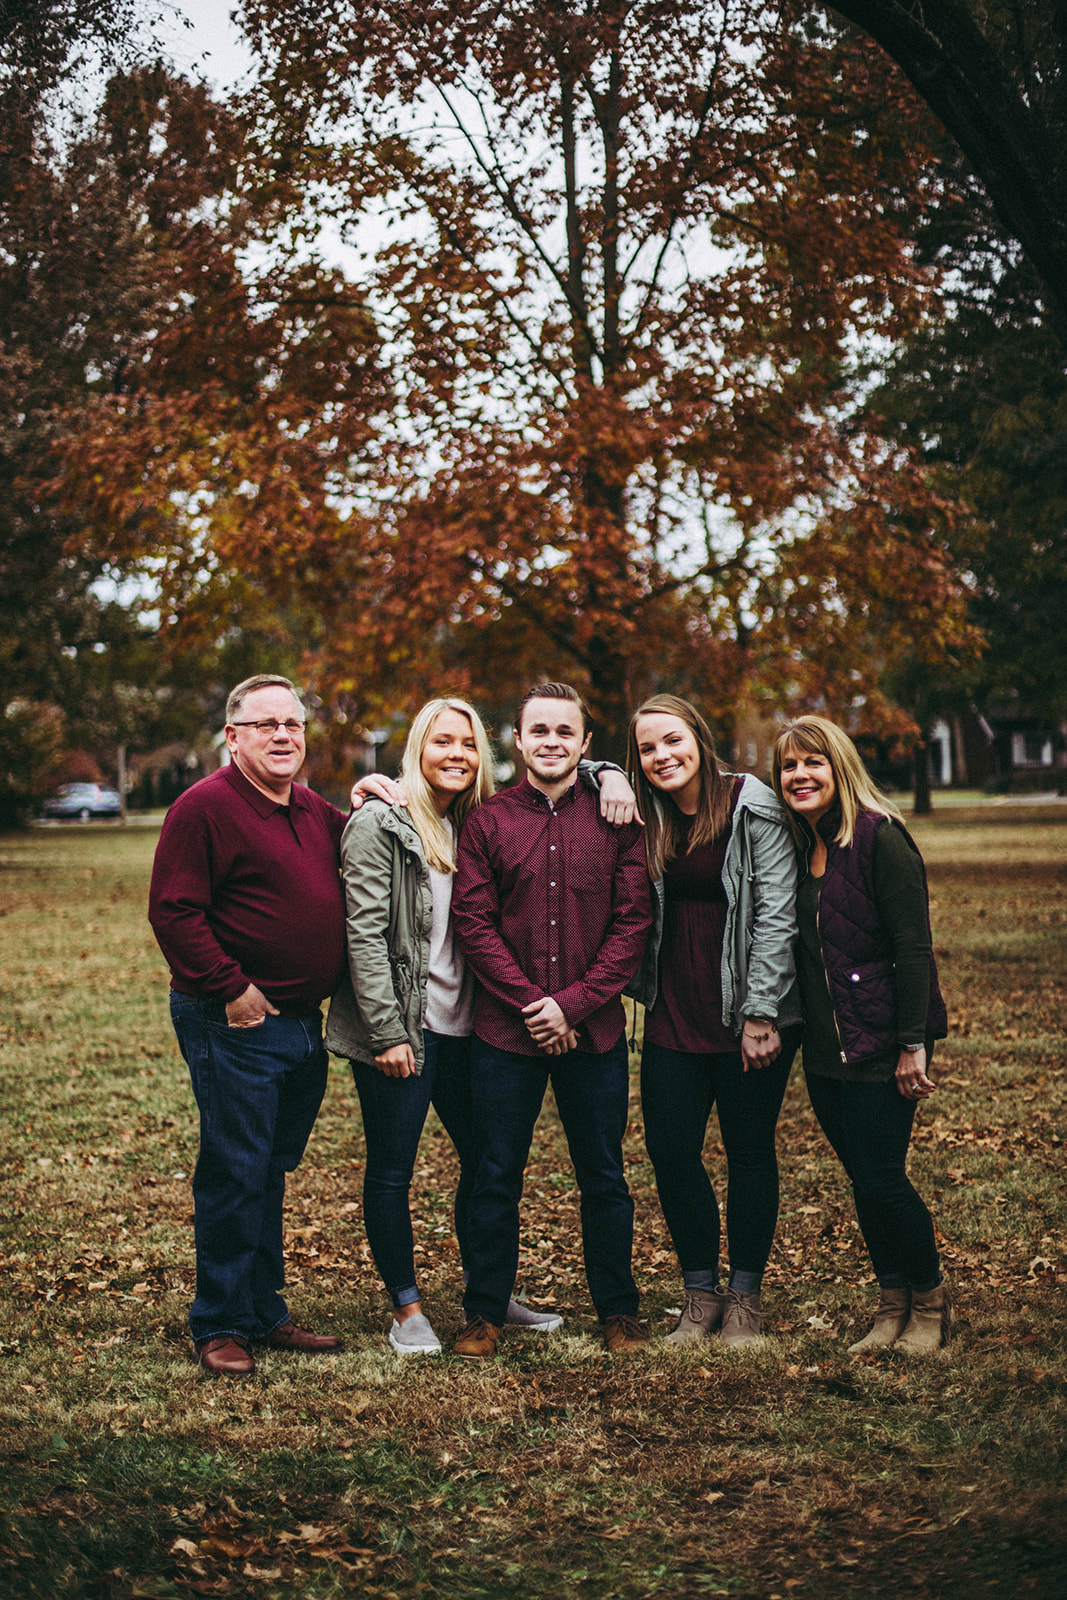 Christmas card family portrait session in Columbus, IN